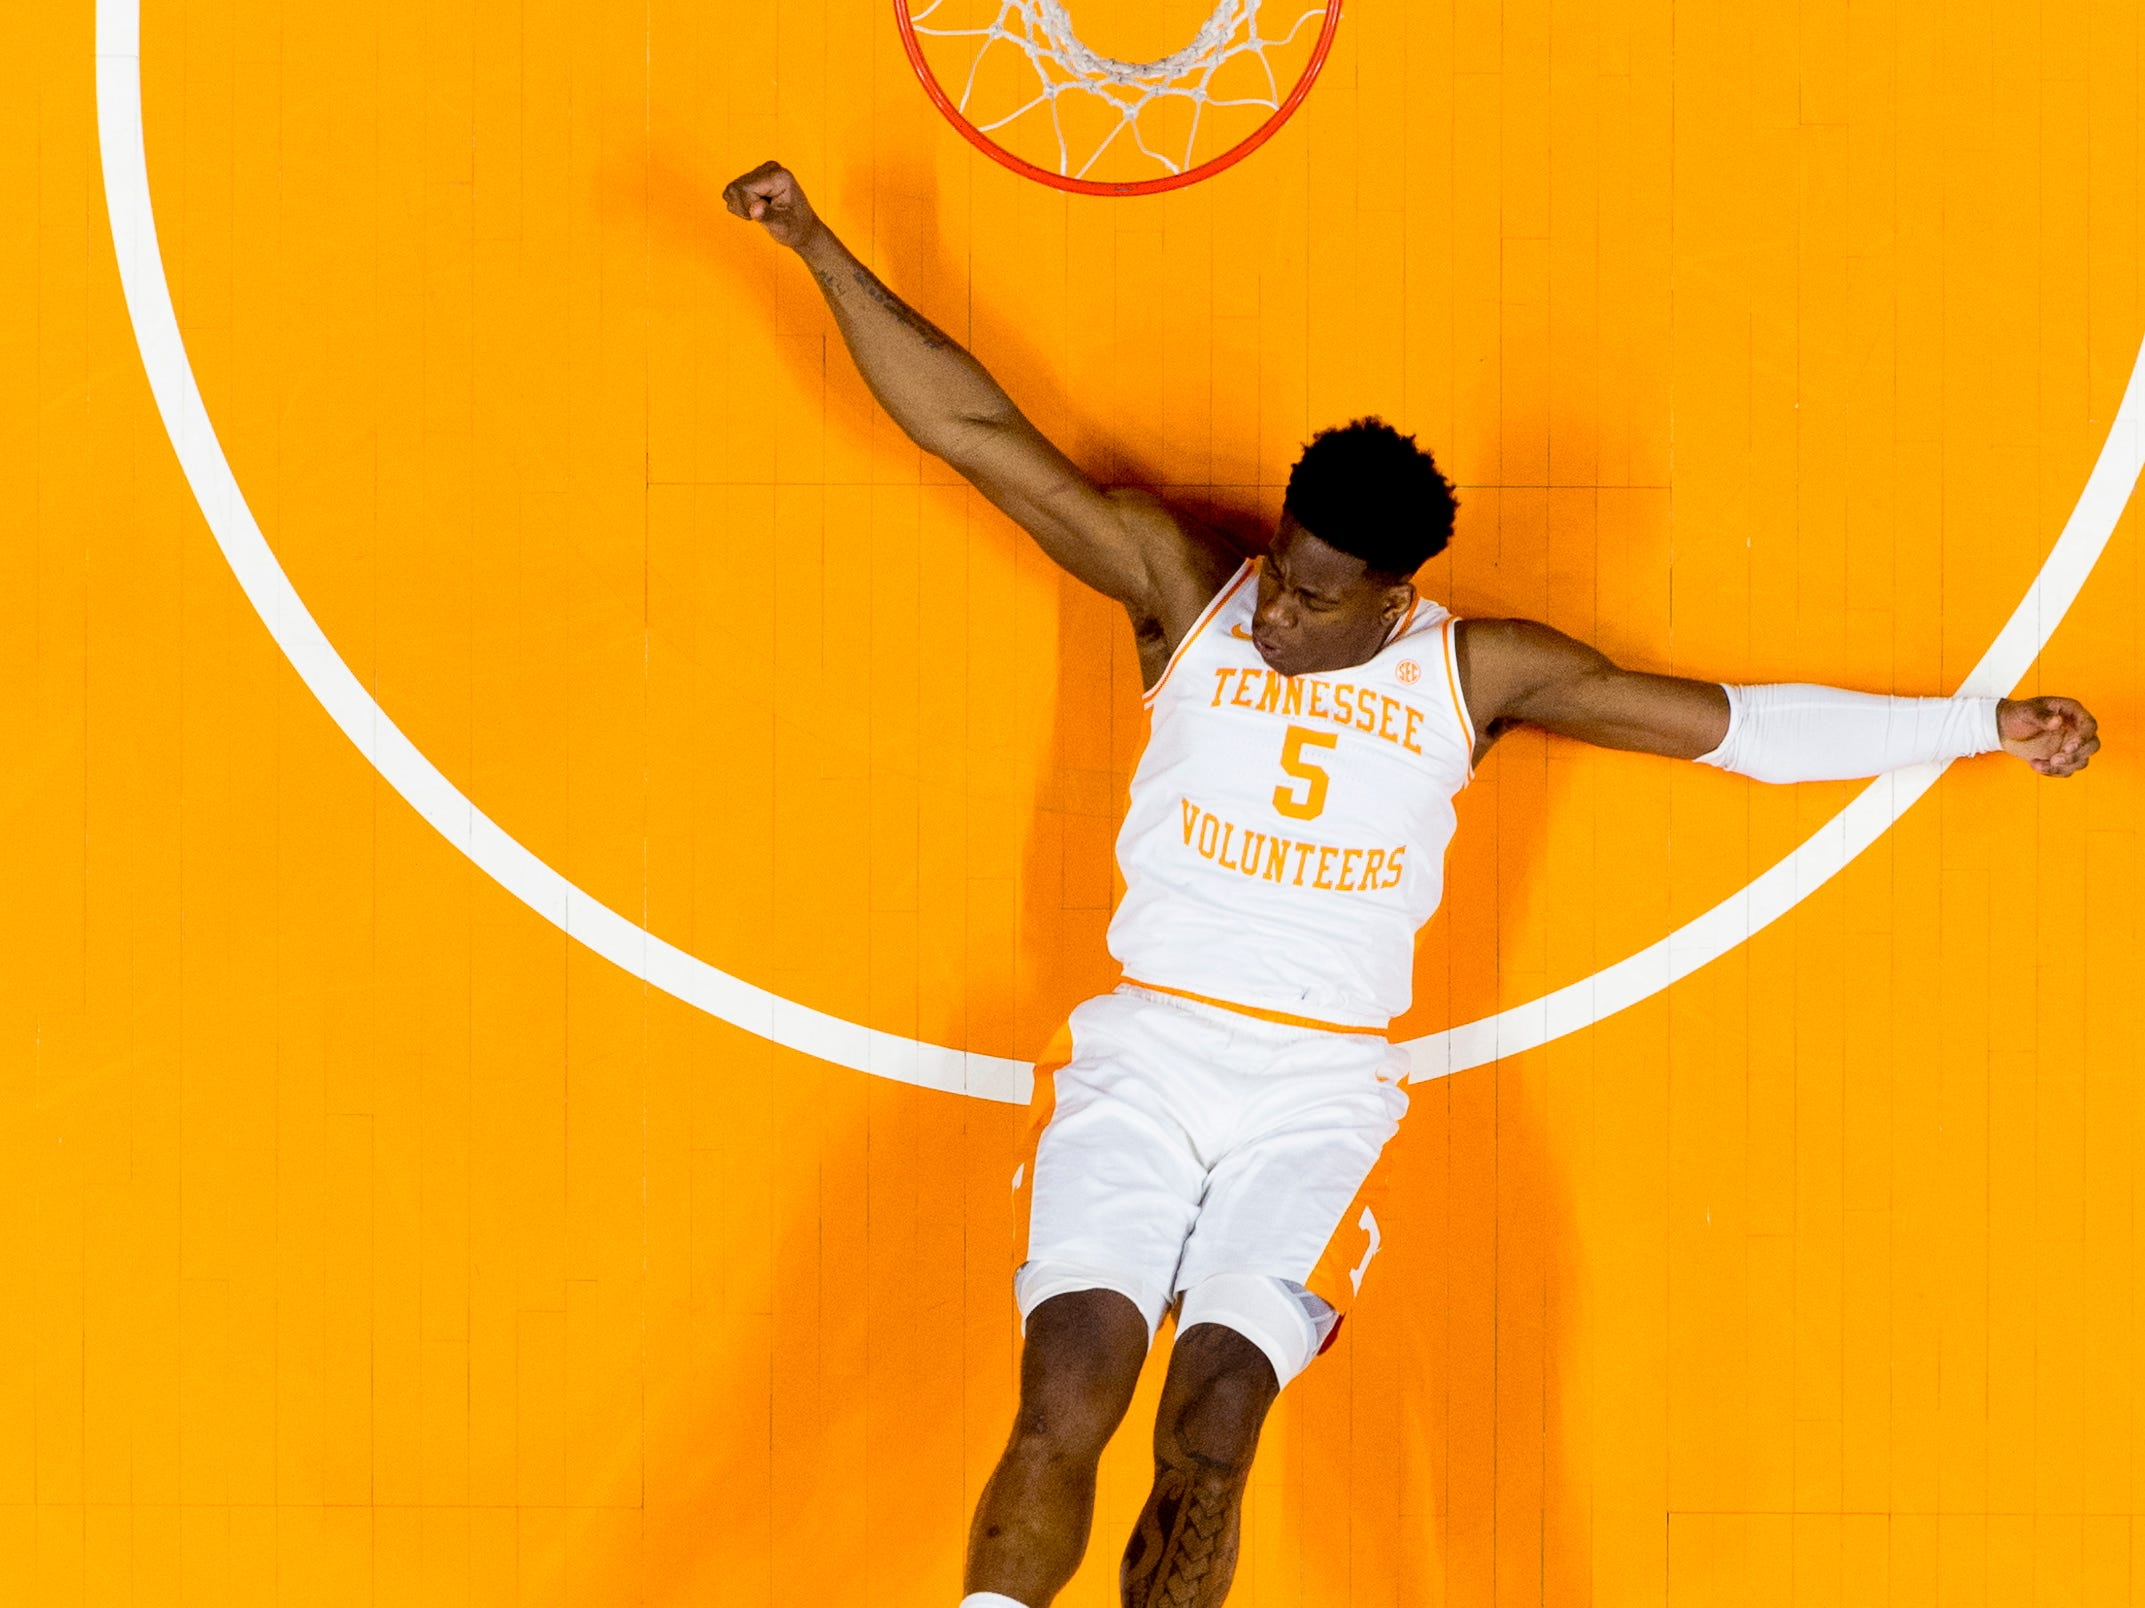 Tennessee guard Admiral Schofield (5) falls to the ground during a SEC/Big 12 Challenge game between Tennessee and West Virginia at Thompson-Boling Arena in Knoxville, Tennessee on Saturday, January 26, 2019.